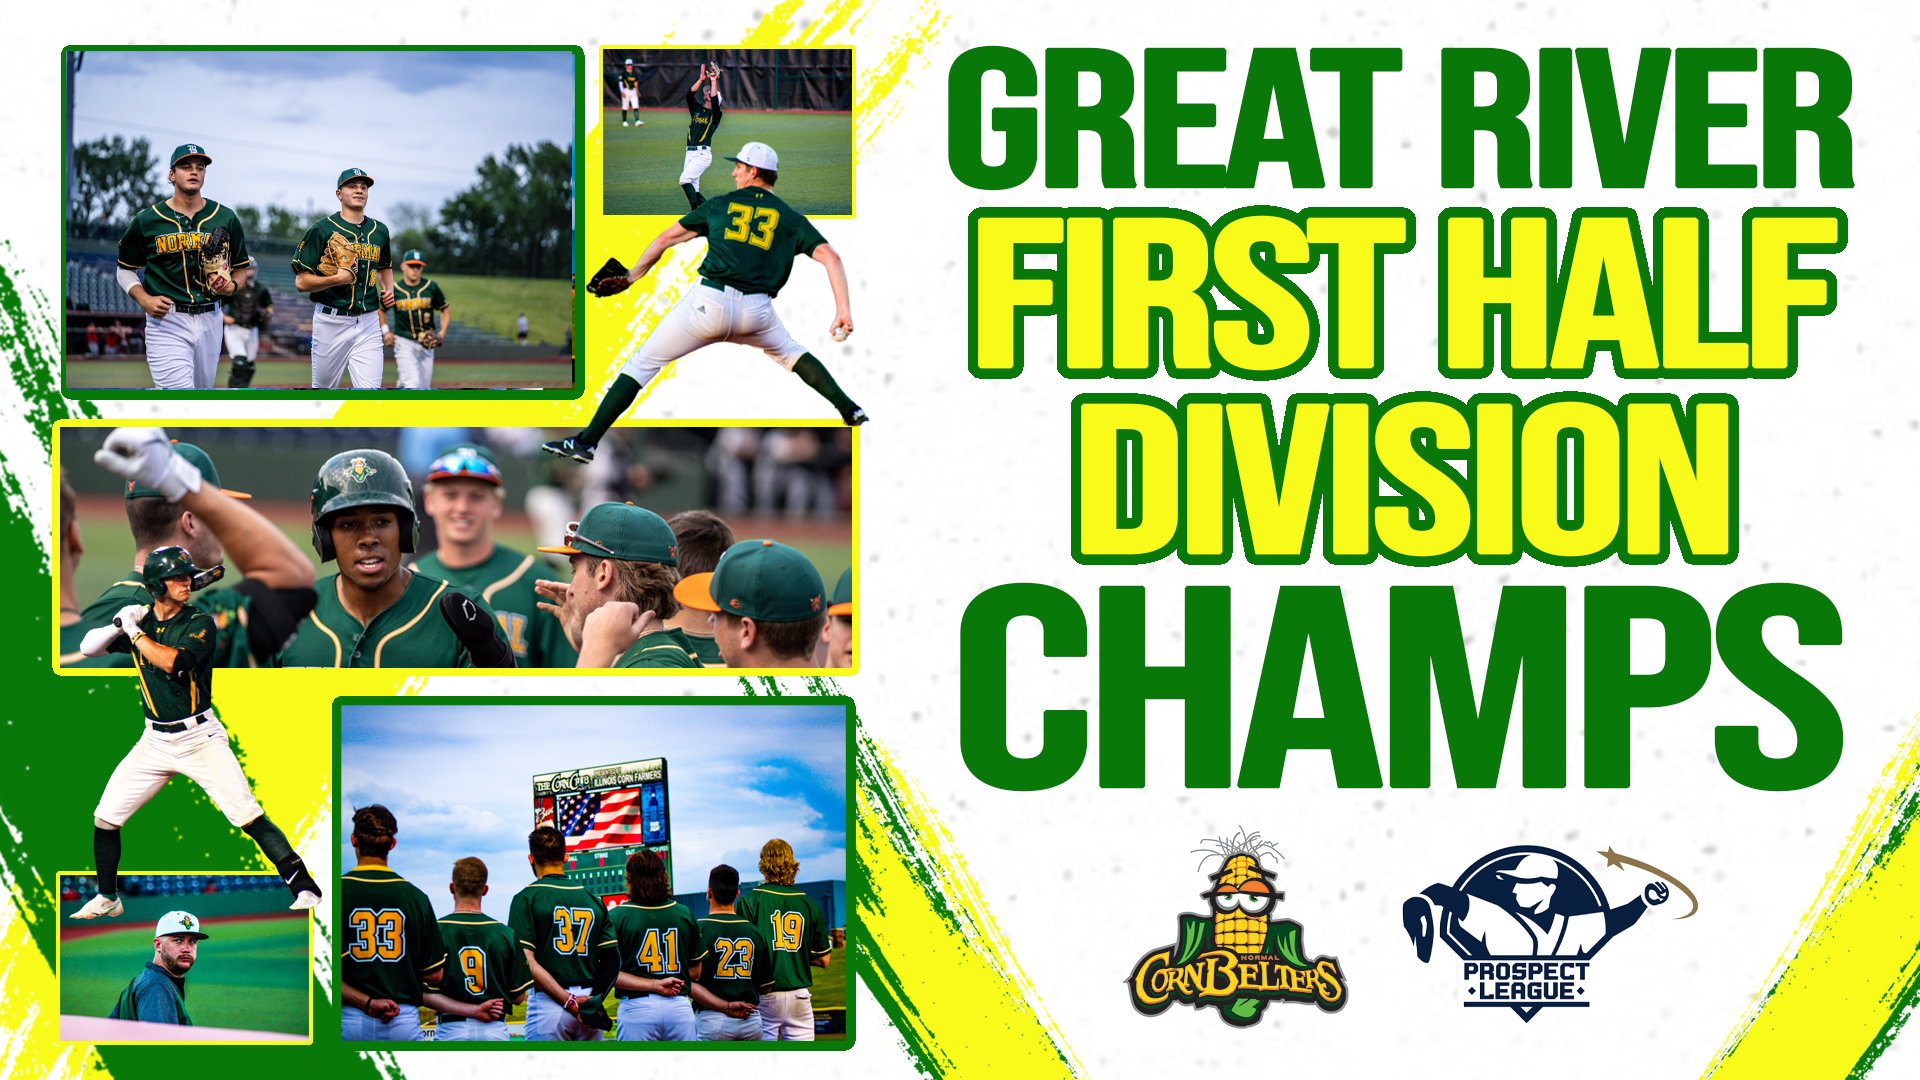 Division-Champs